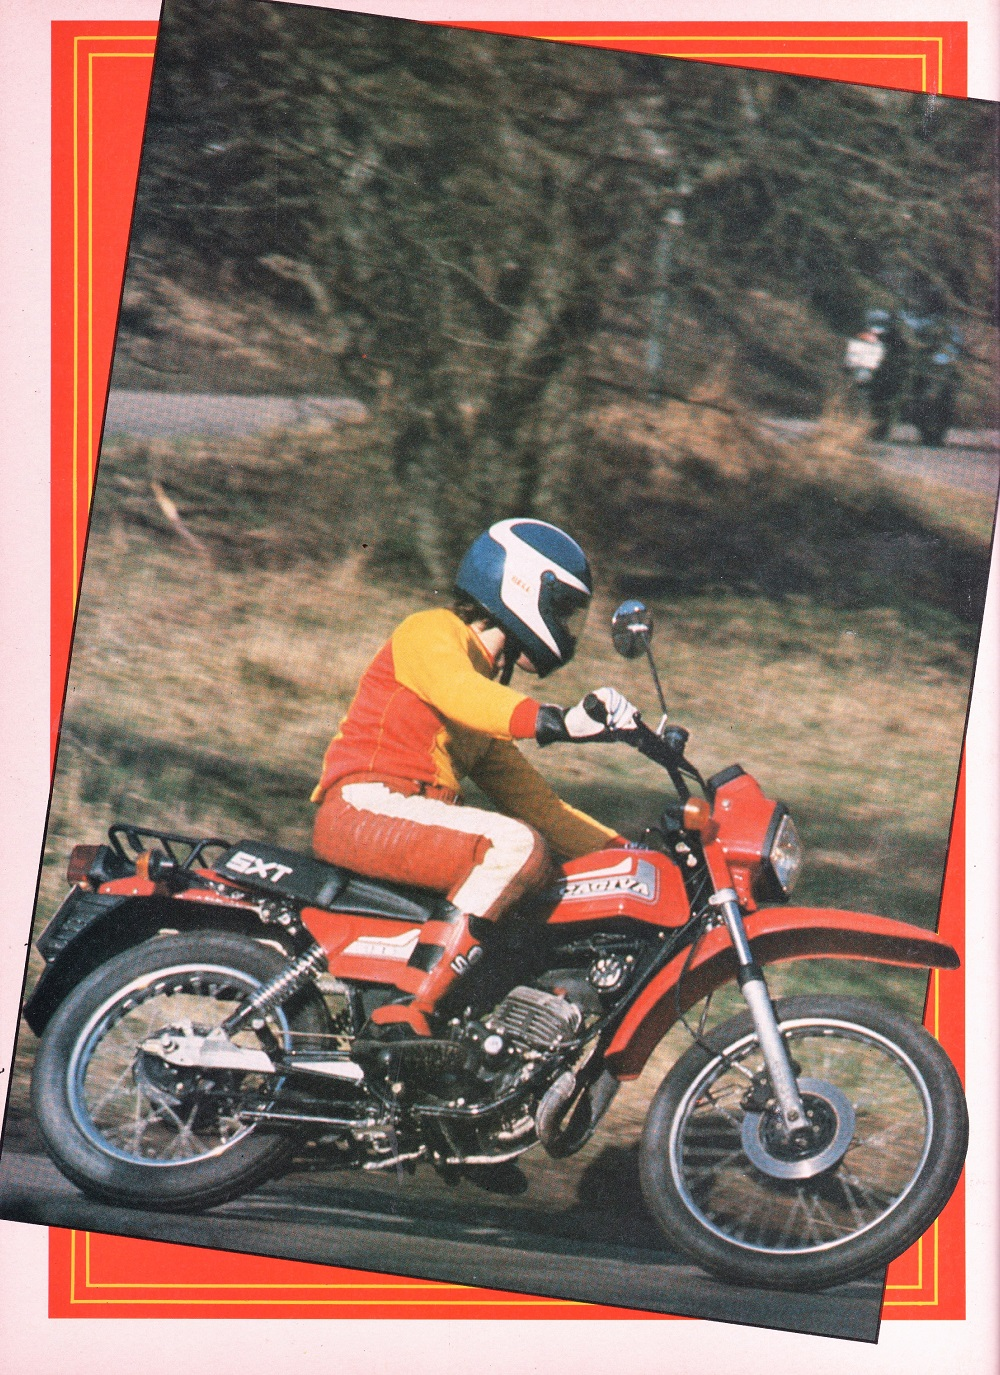 1983 Cagiva STX125 road test.1.jpg